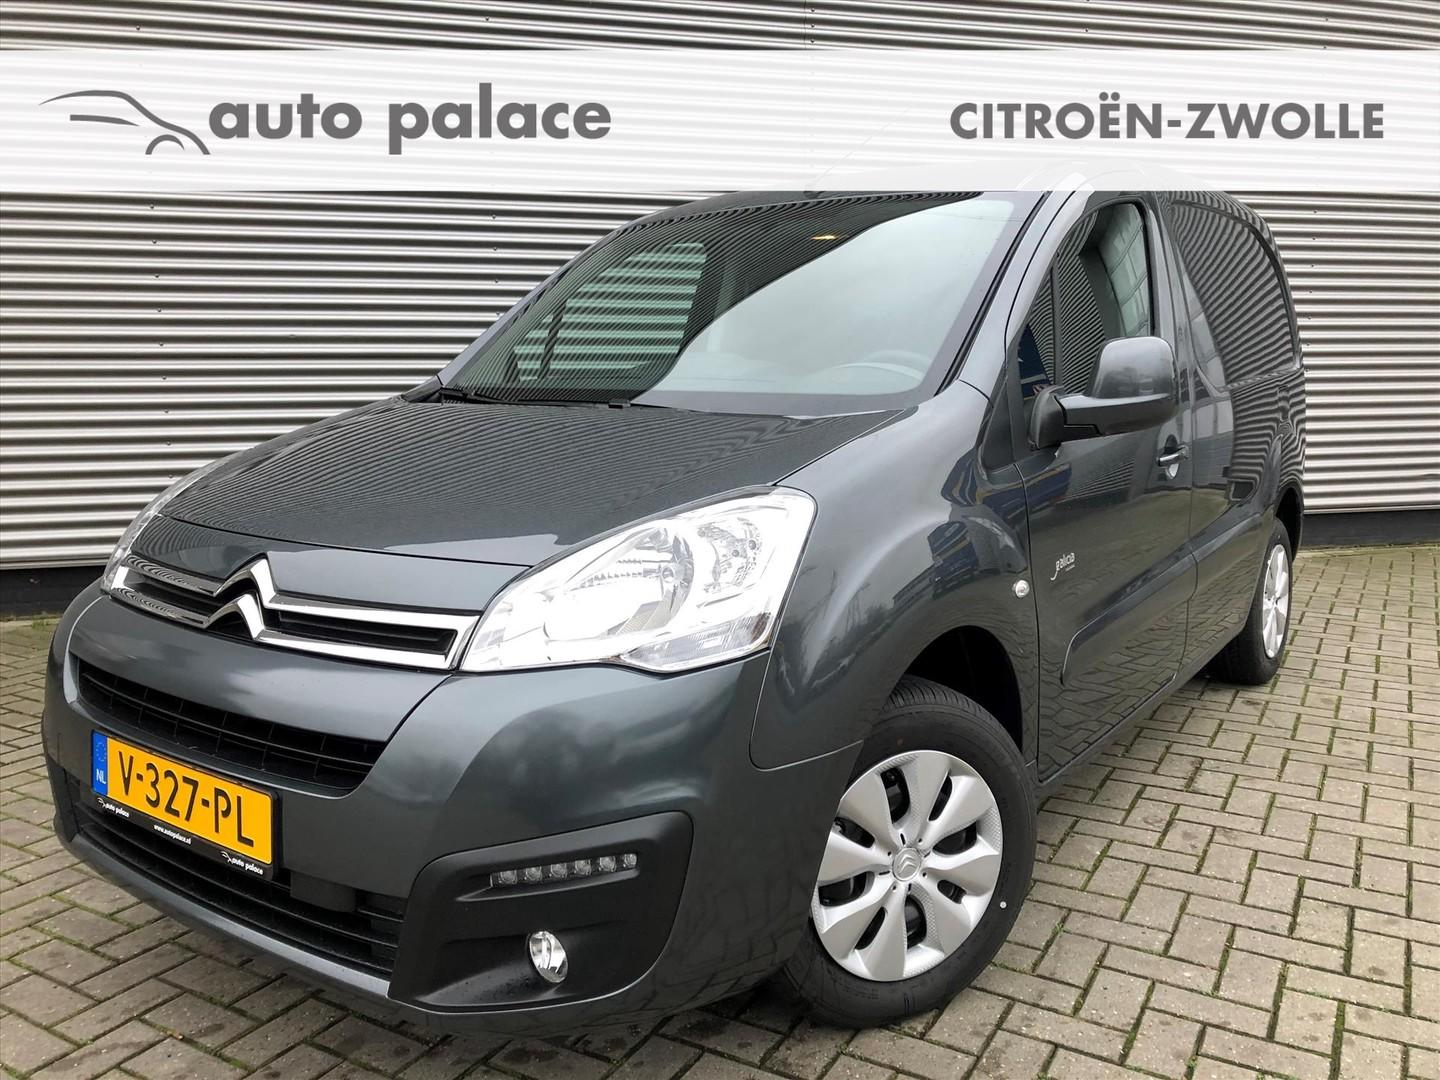 Citroën Berlingo Gb 1.6 bluehdi 100pk sens 2pl club economy airco